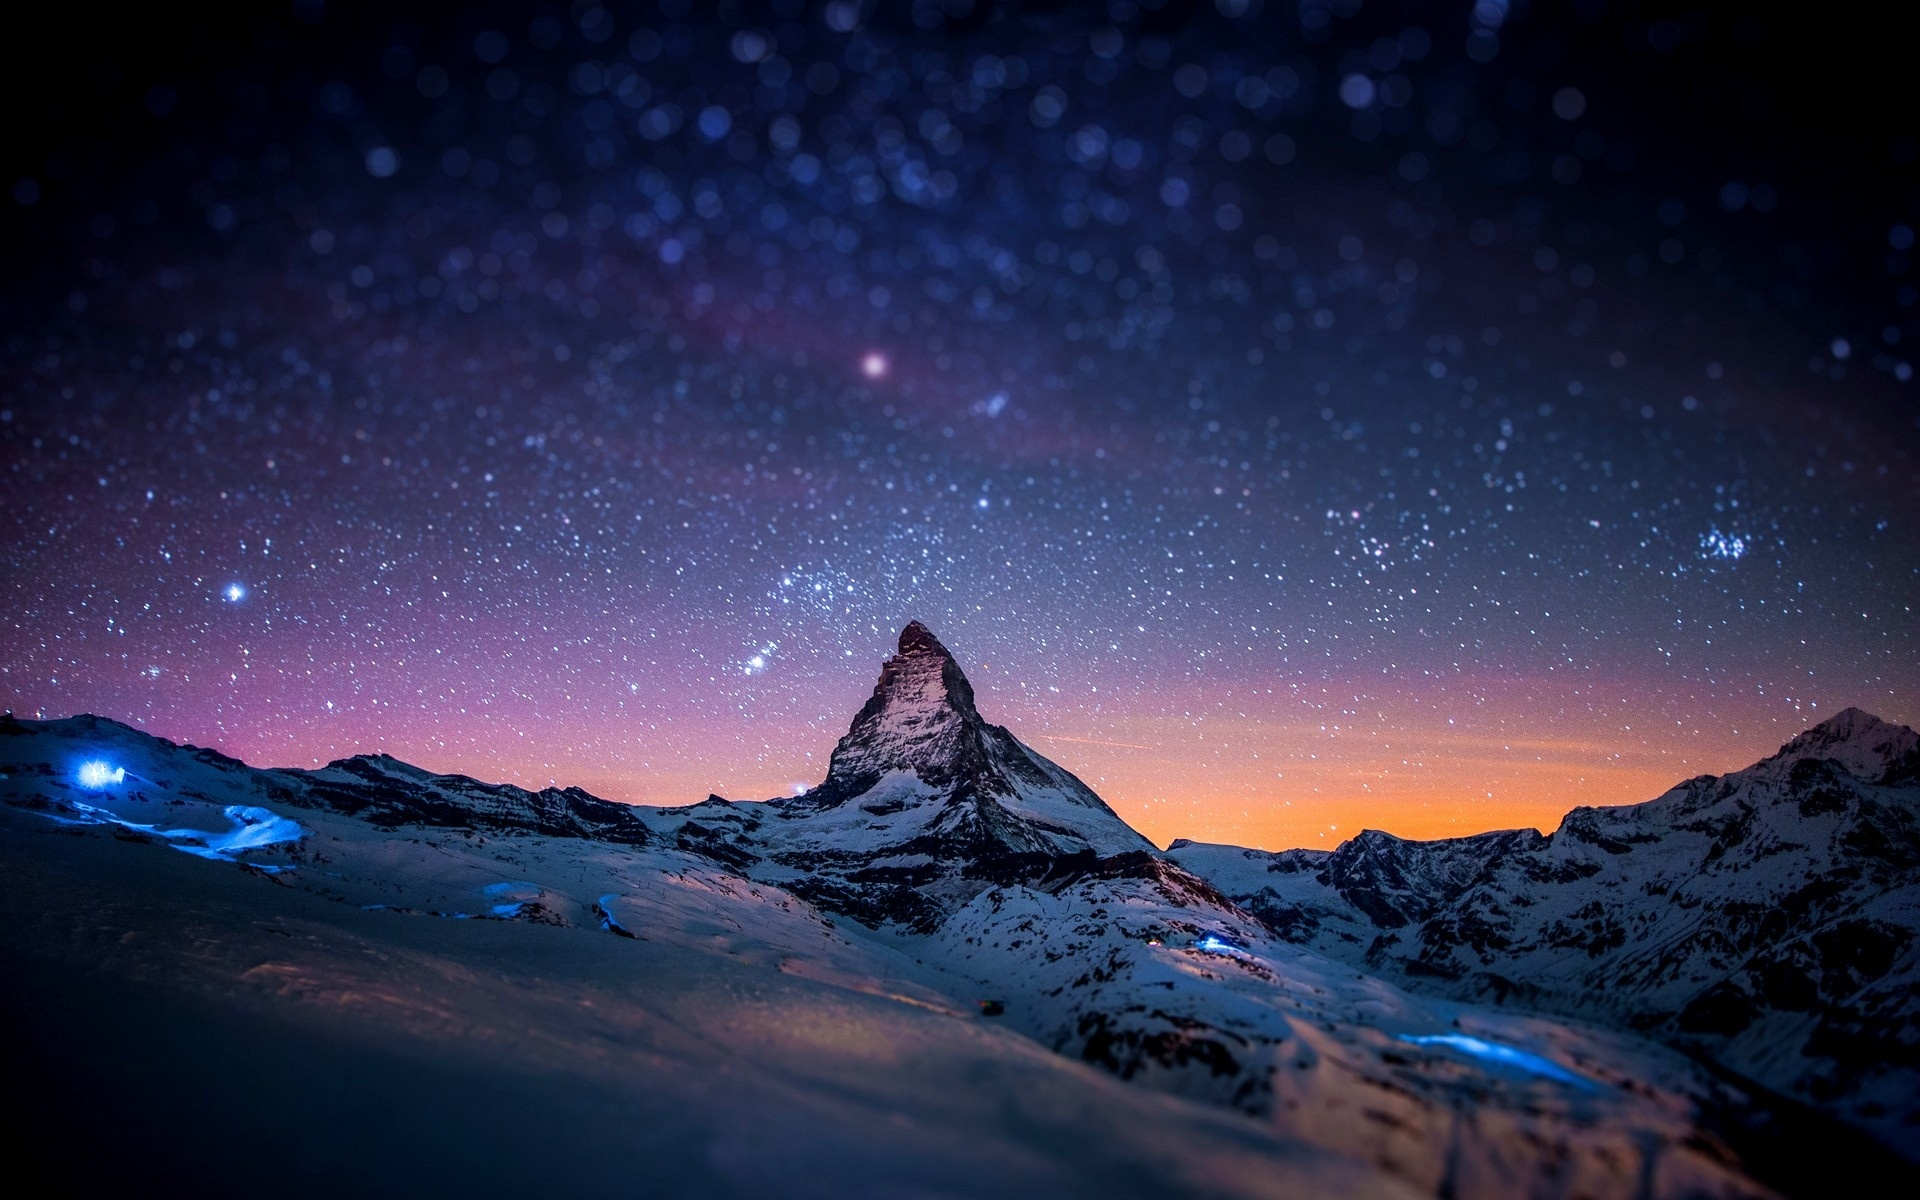 Milky Way sky over The Matterhorn Switzerland 1920x1200